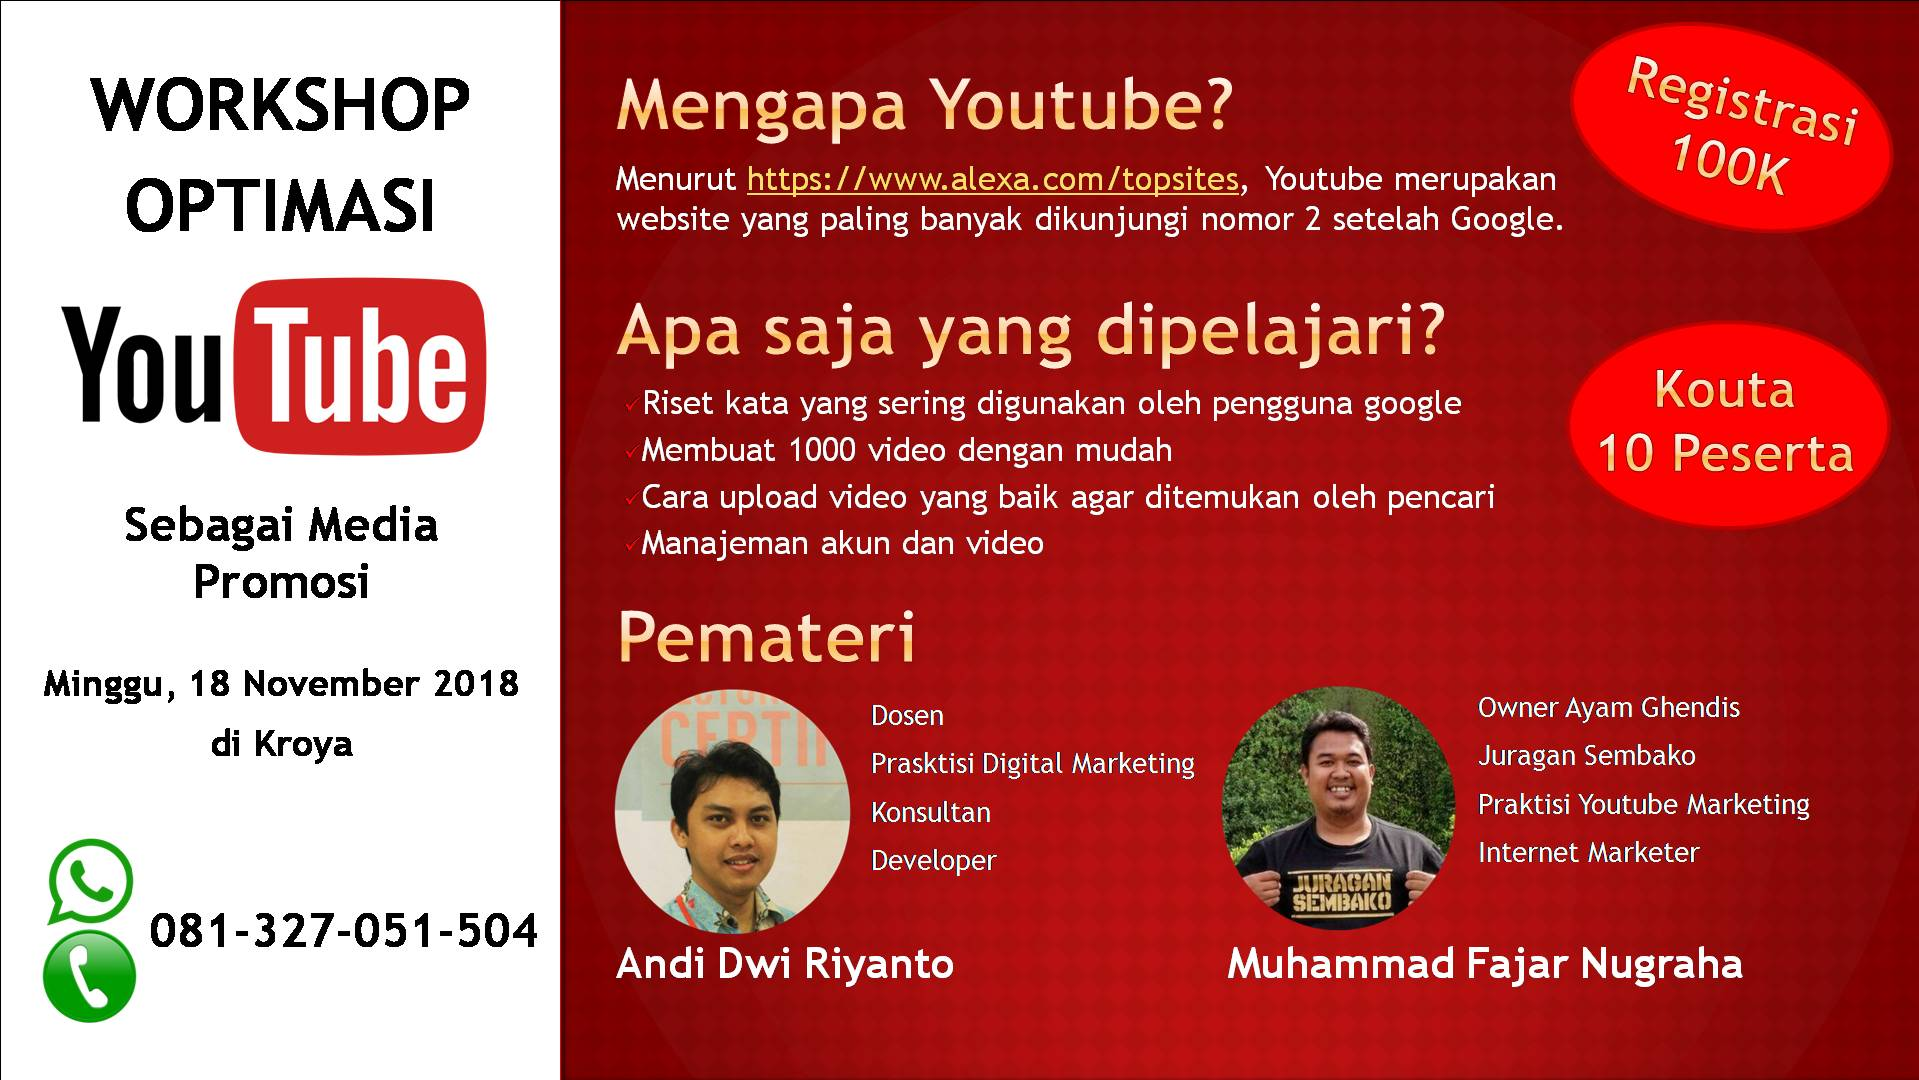 Workshop Optimasi Youtube Sebagai Media Promosi